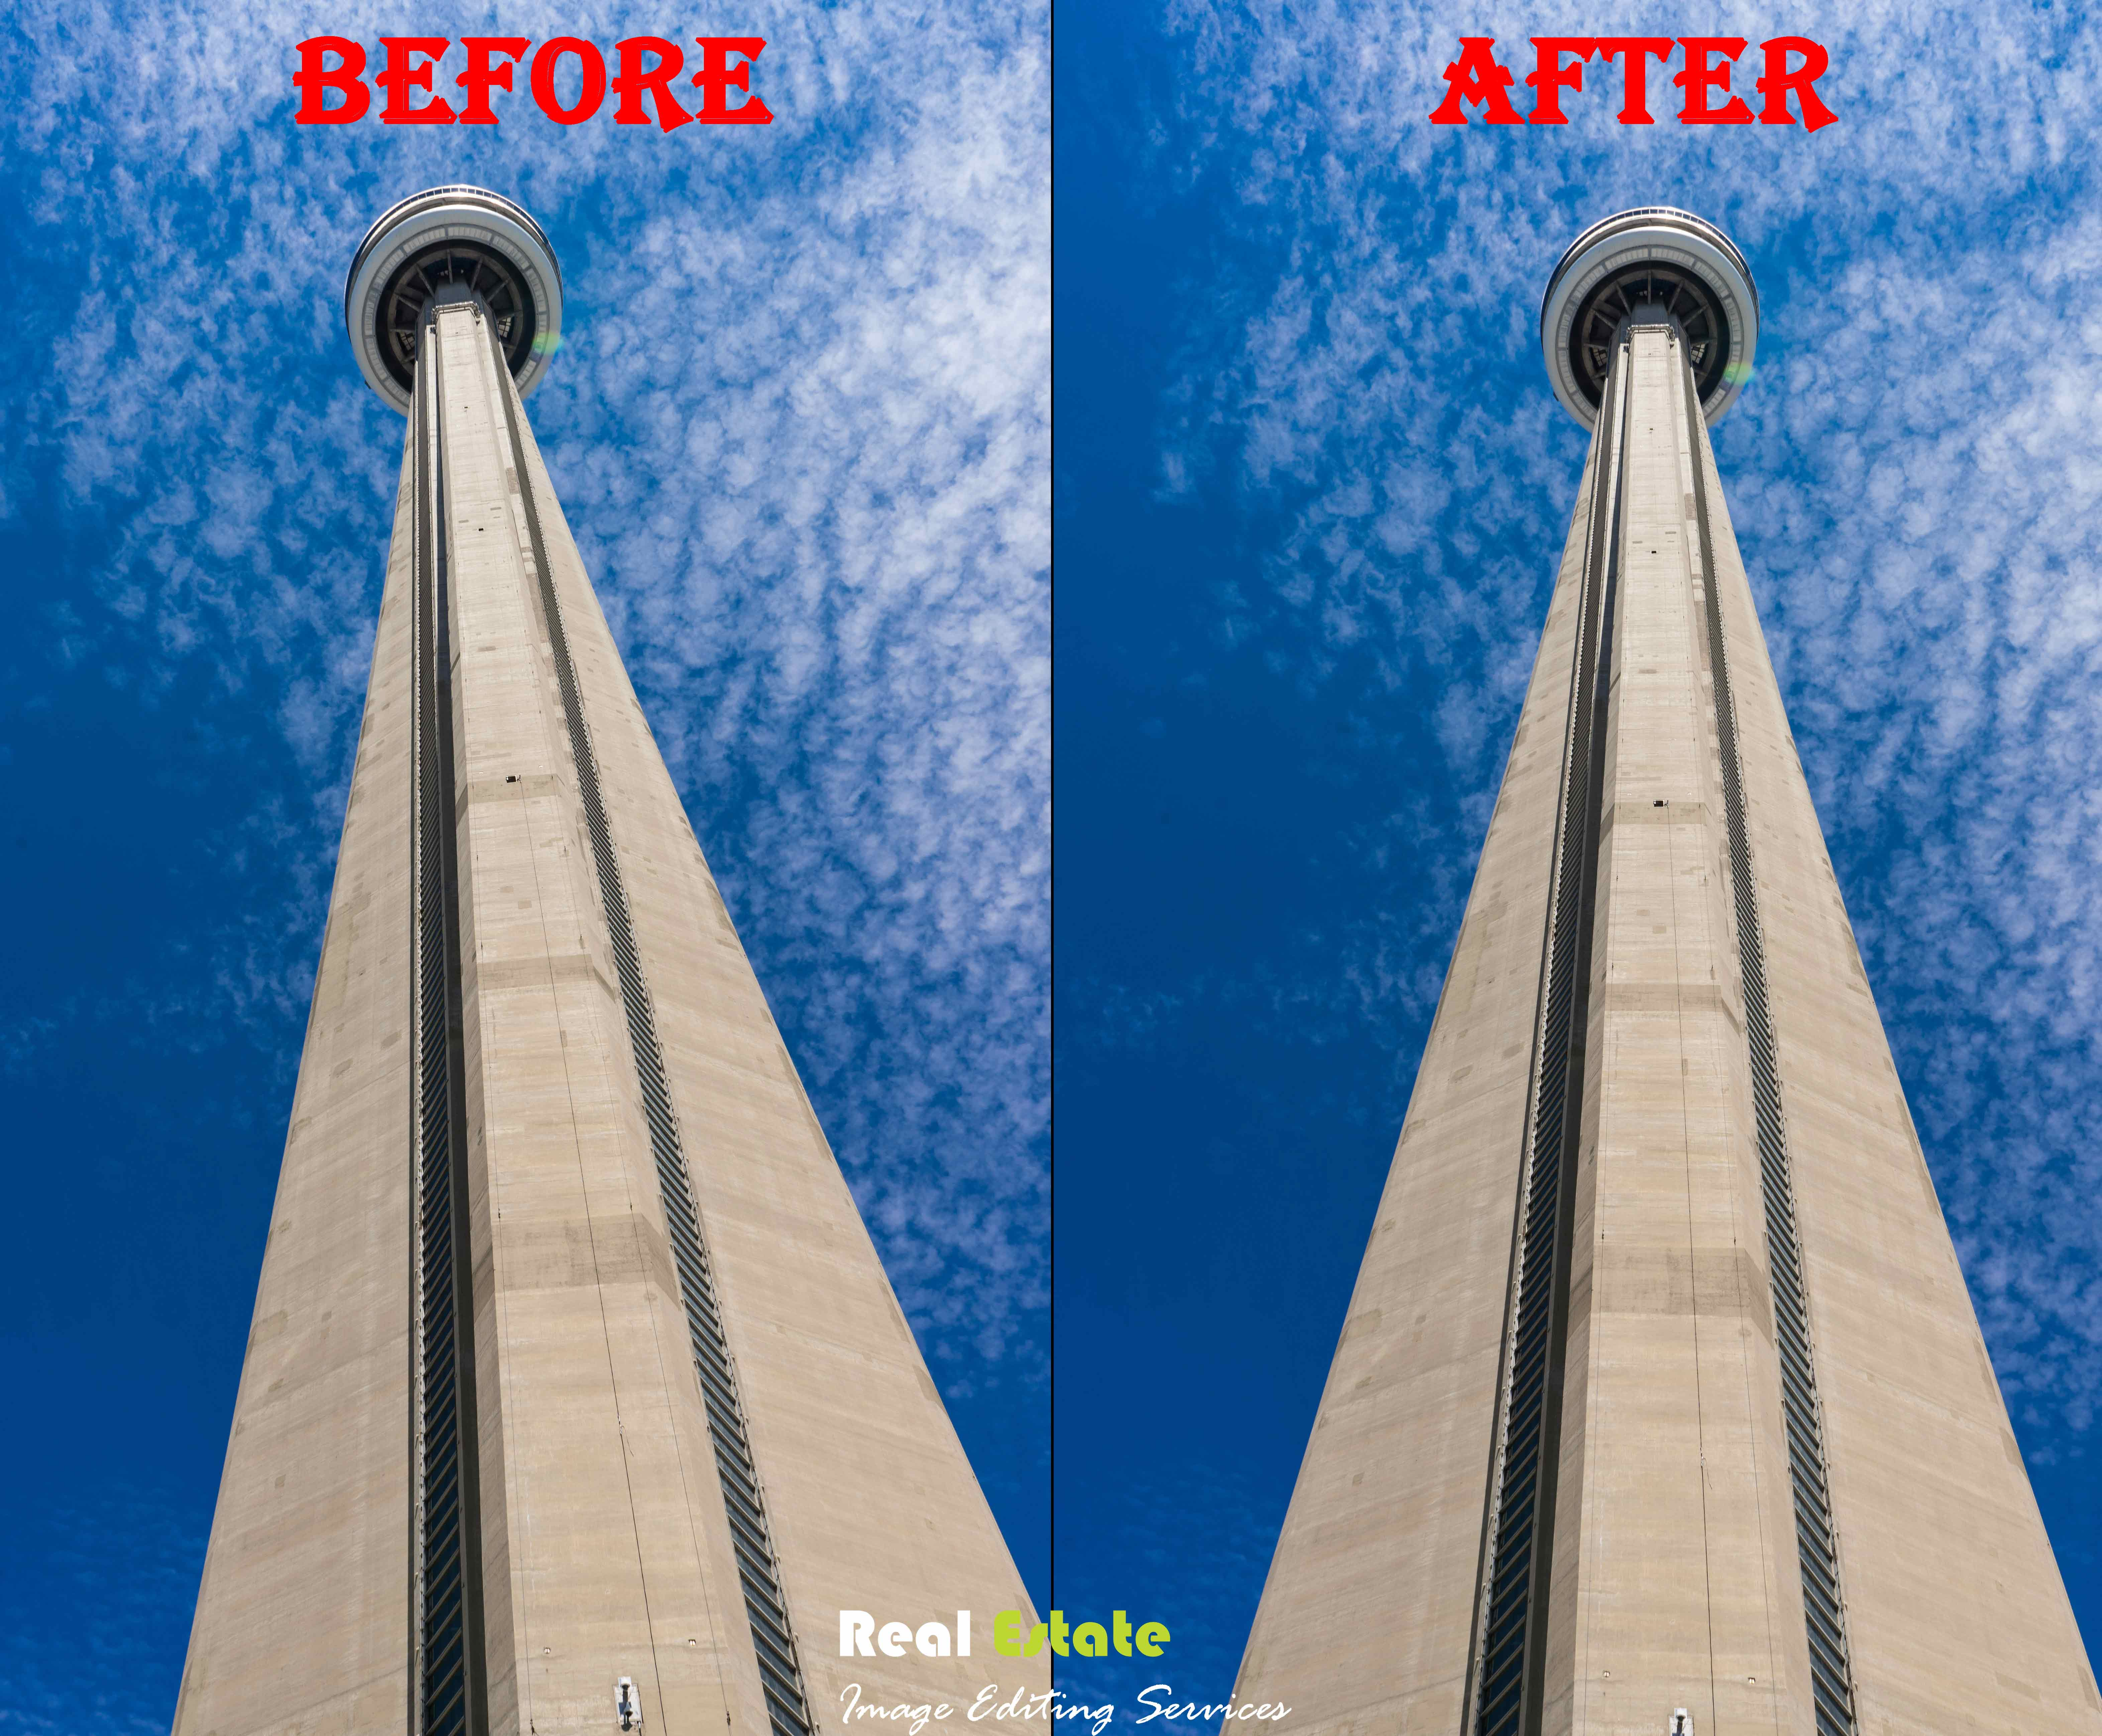 Lend distortion correcting service | Real-Estate-Image-Editing-Services